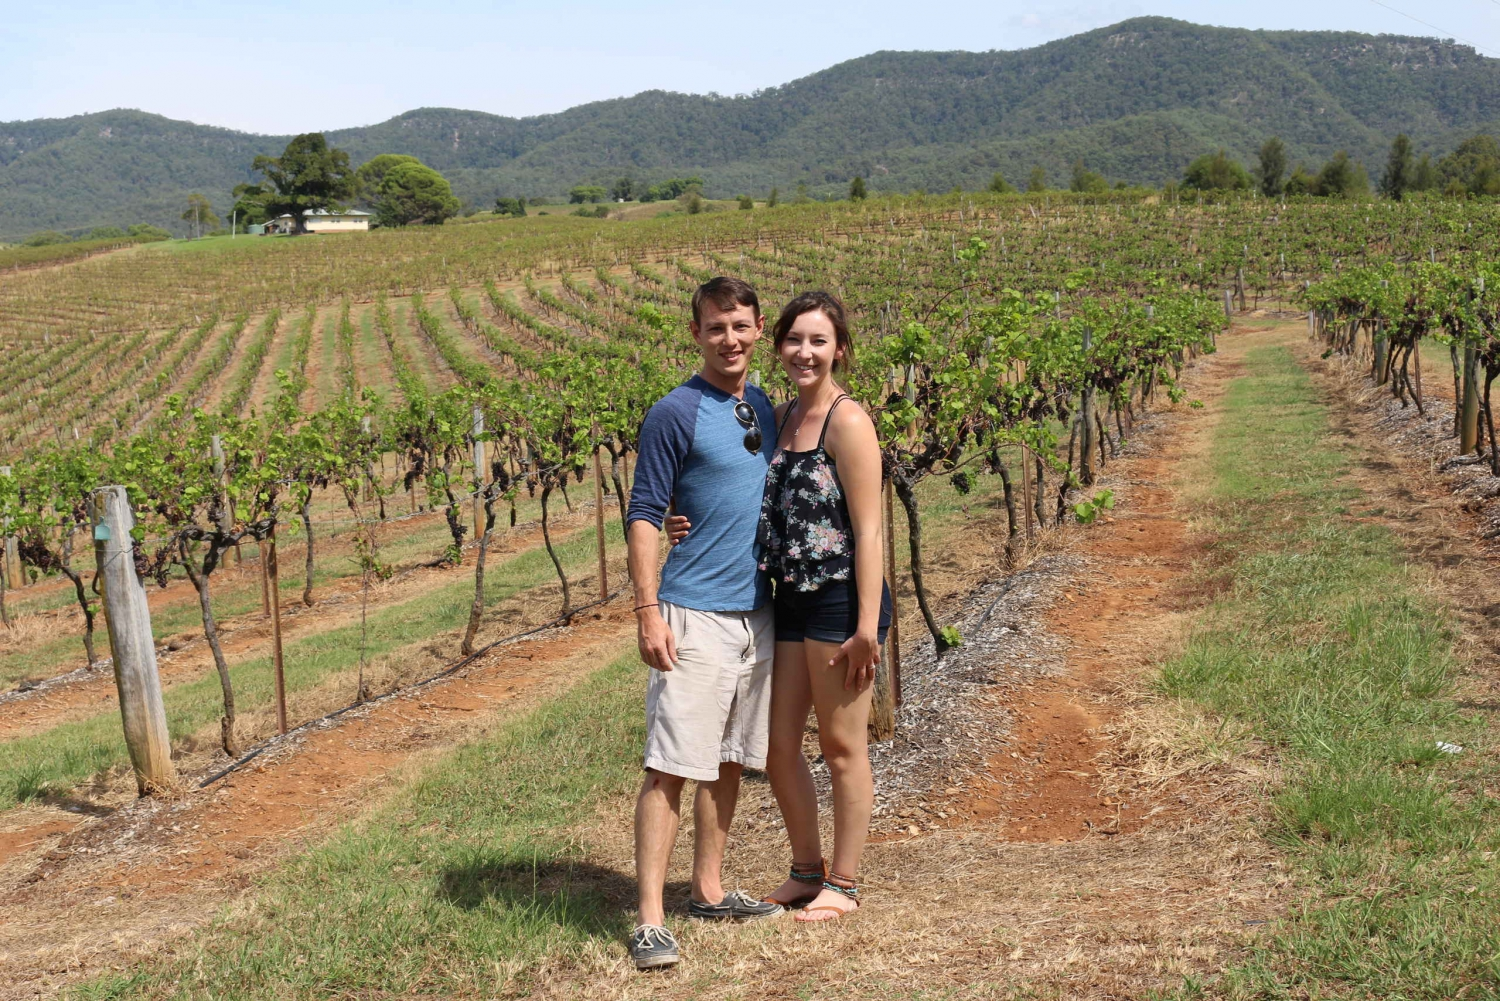 Hunter Valley Winery Tour & Scenic Sydney Harbor Cruise